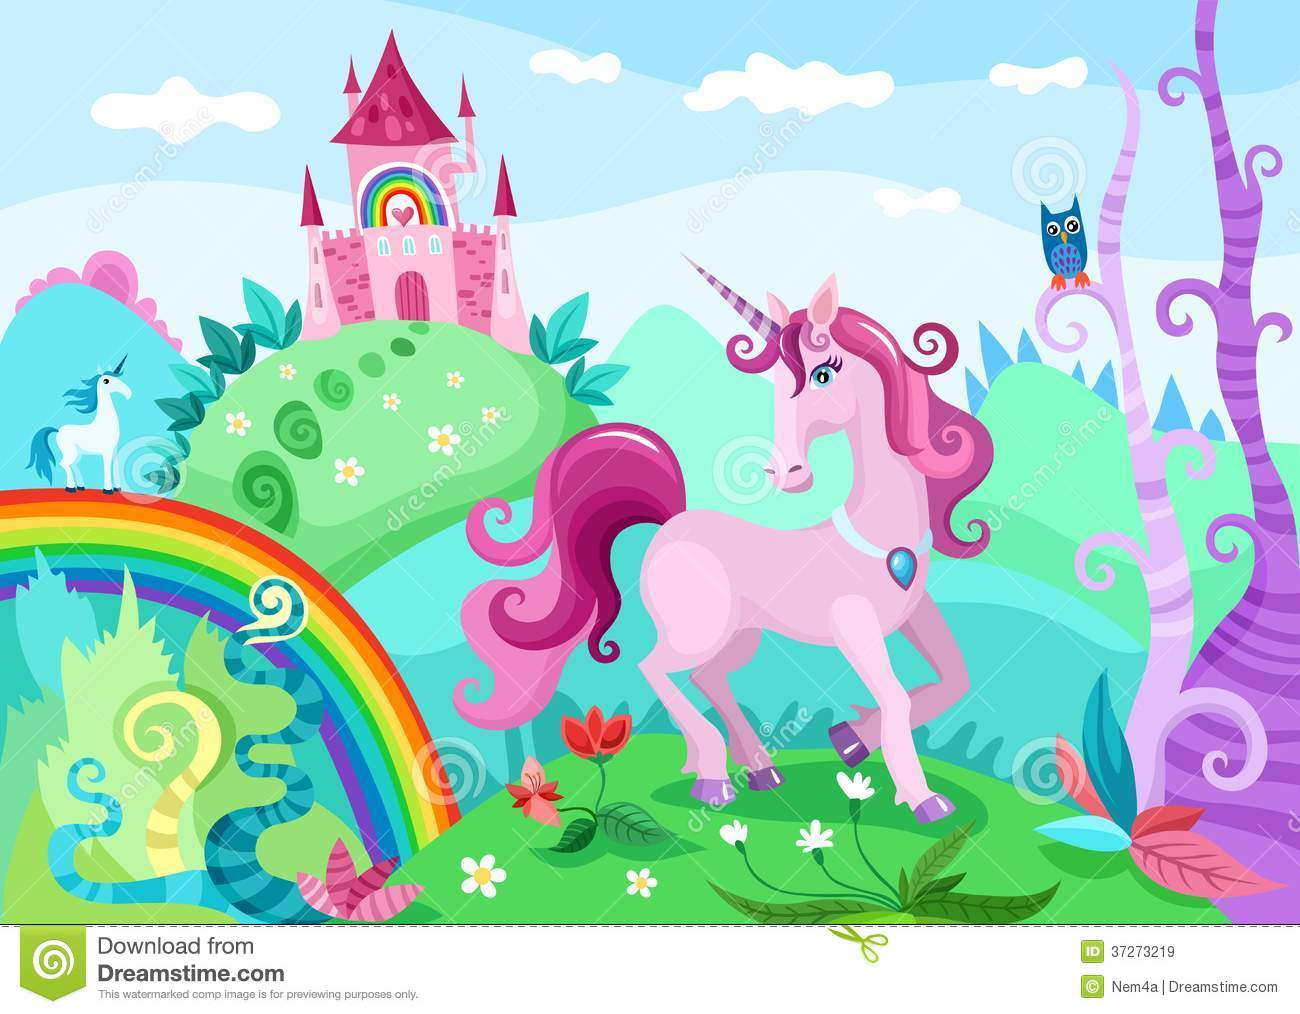 Vector illustration of a beautiful landscape with unicorn